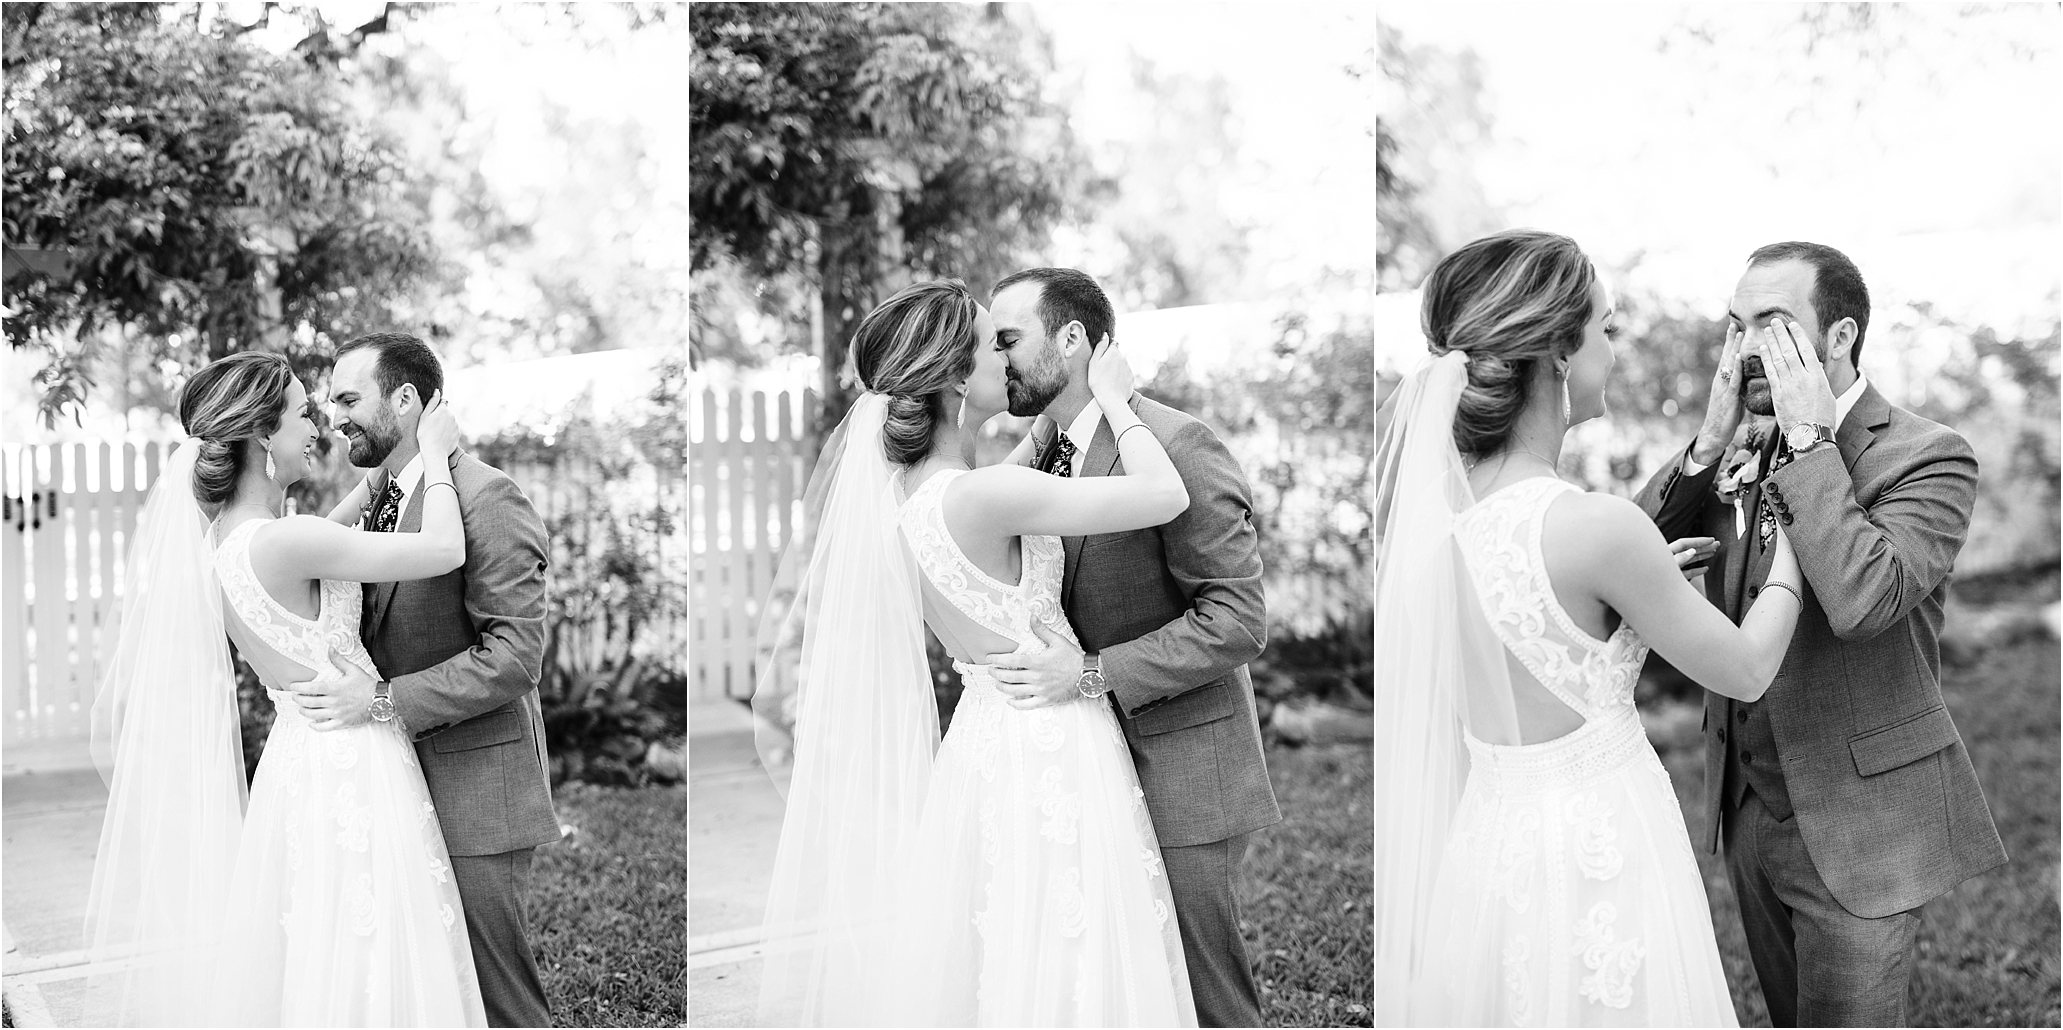 PattisonHouse_TexasWeddingPhotographer_CarlyCrockett&MattBrownWedding_0063.jpg